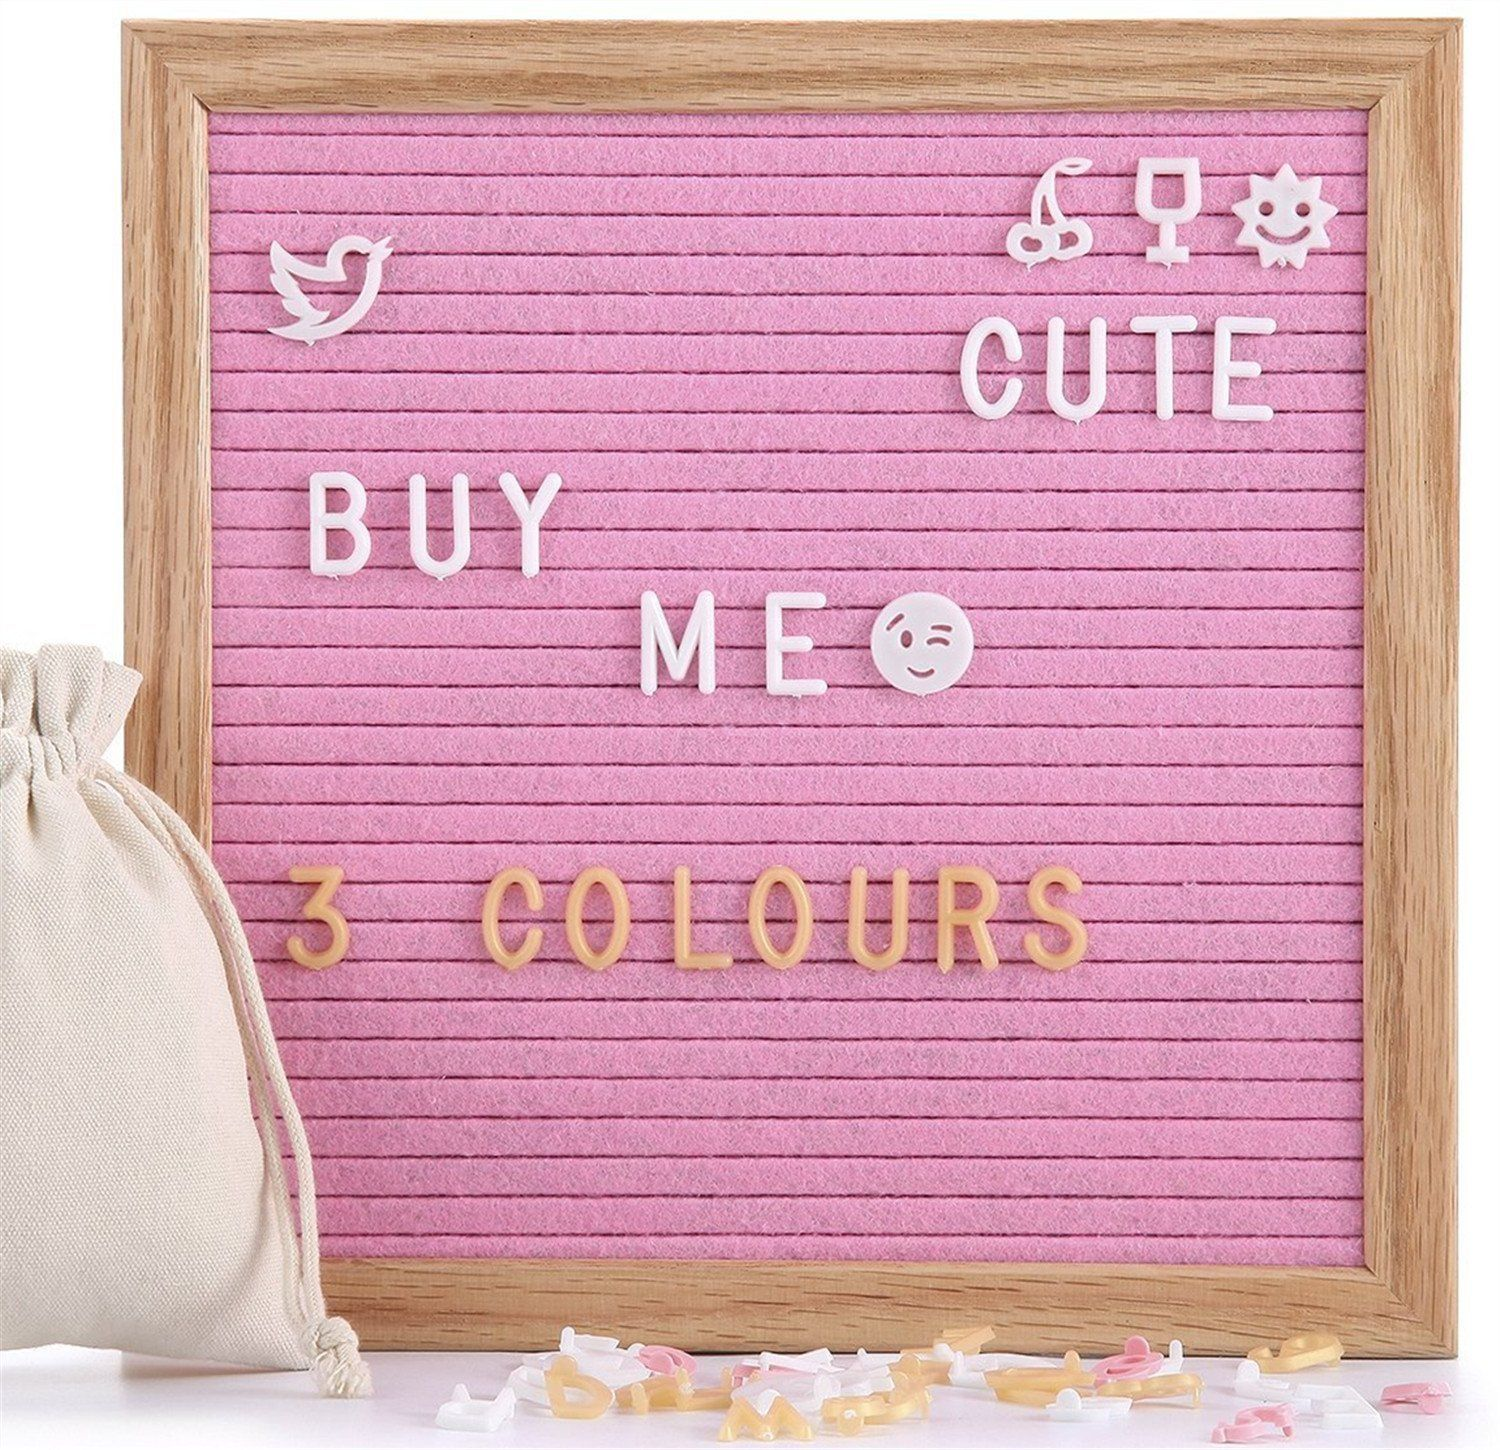 Christian gift pink retro letter board under u20 from